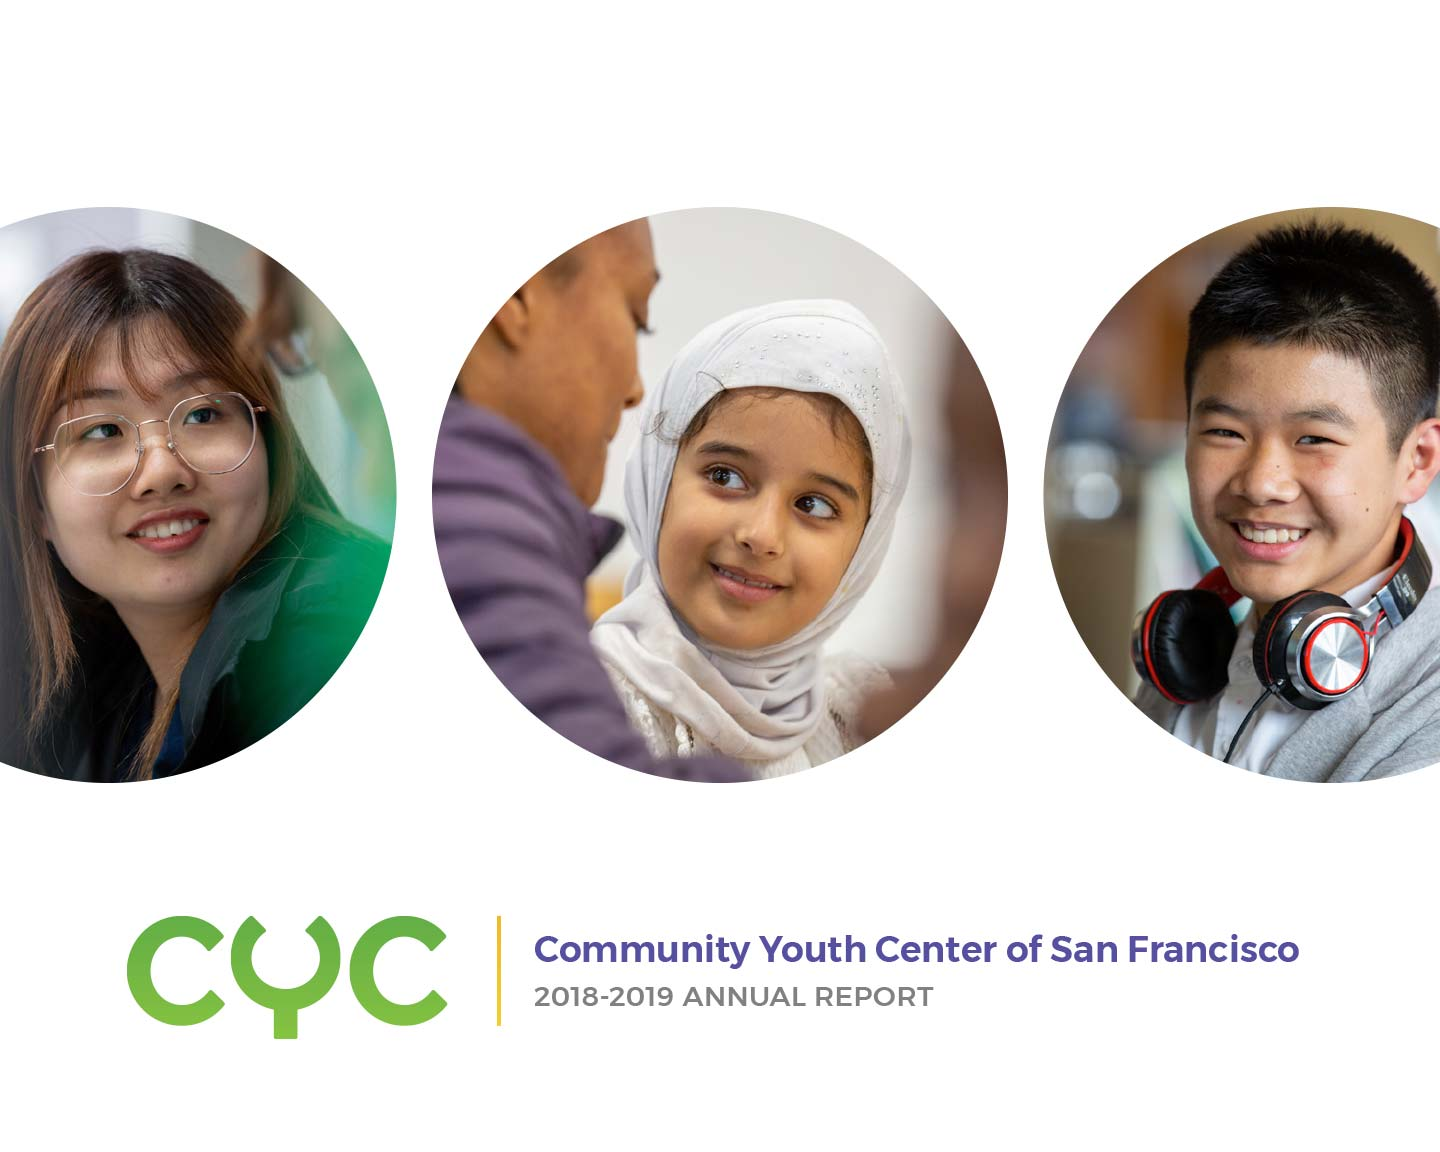 CYC_2018-19_AnnualReport_Cover